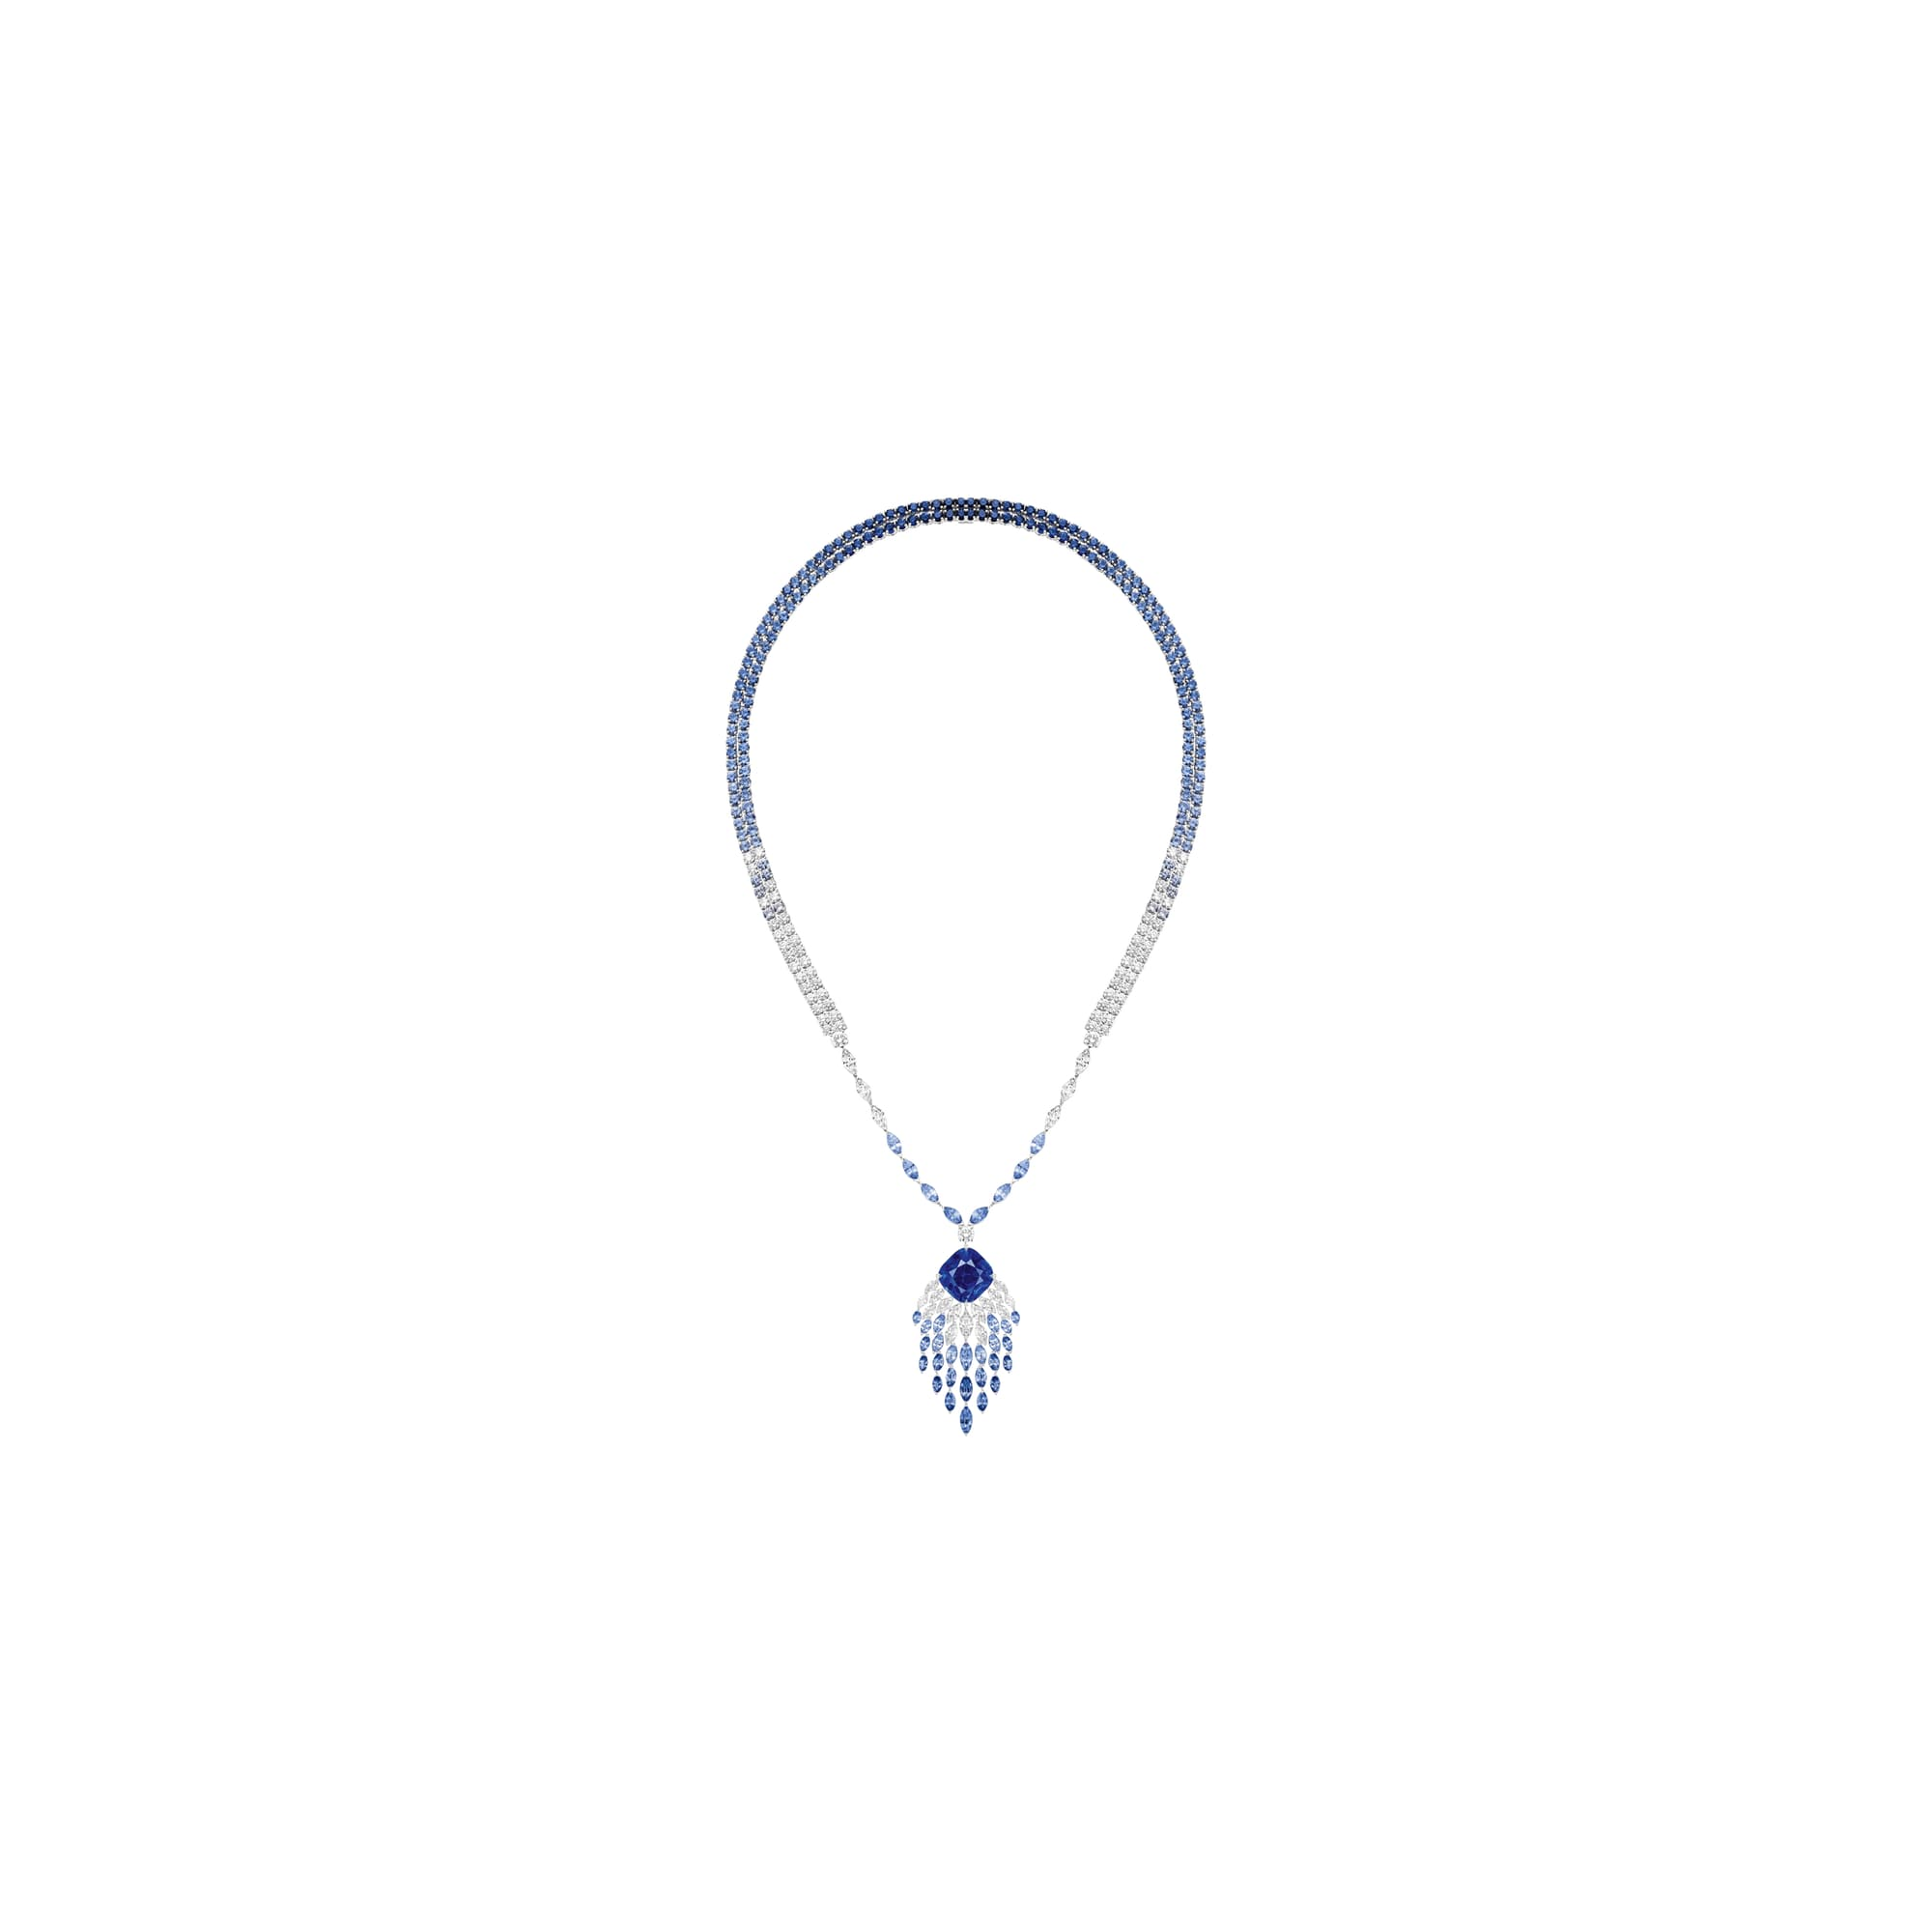 high jewellery diamond necklace set with sapphire